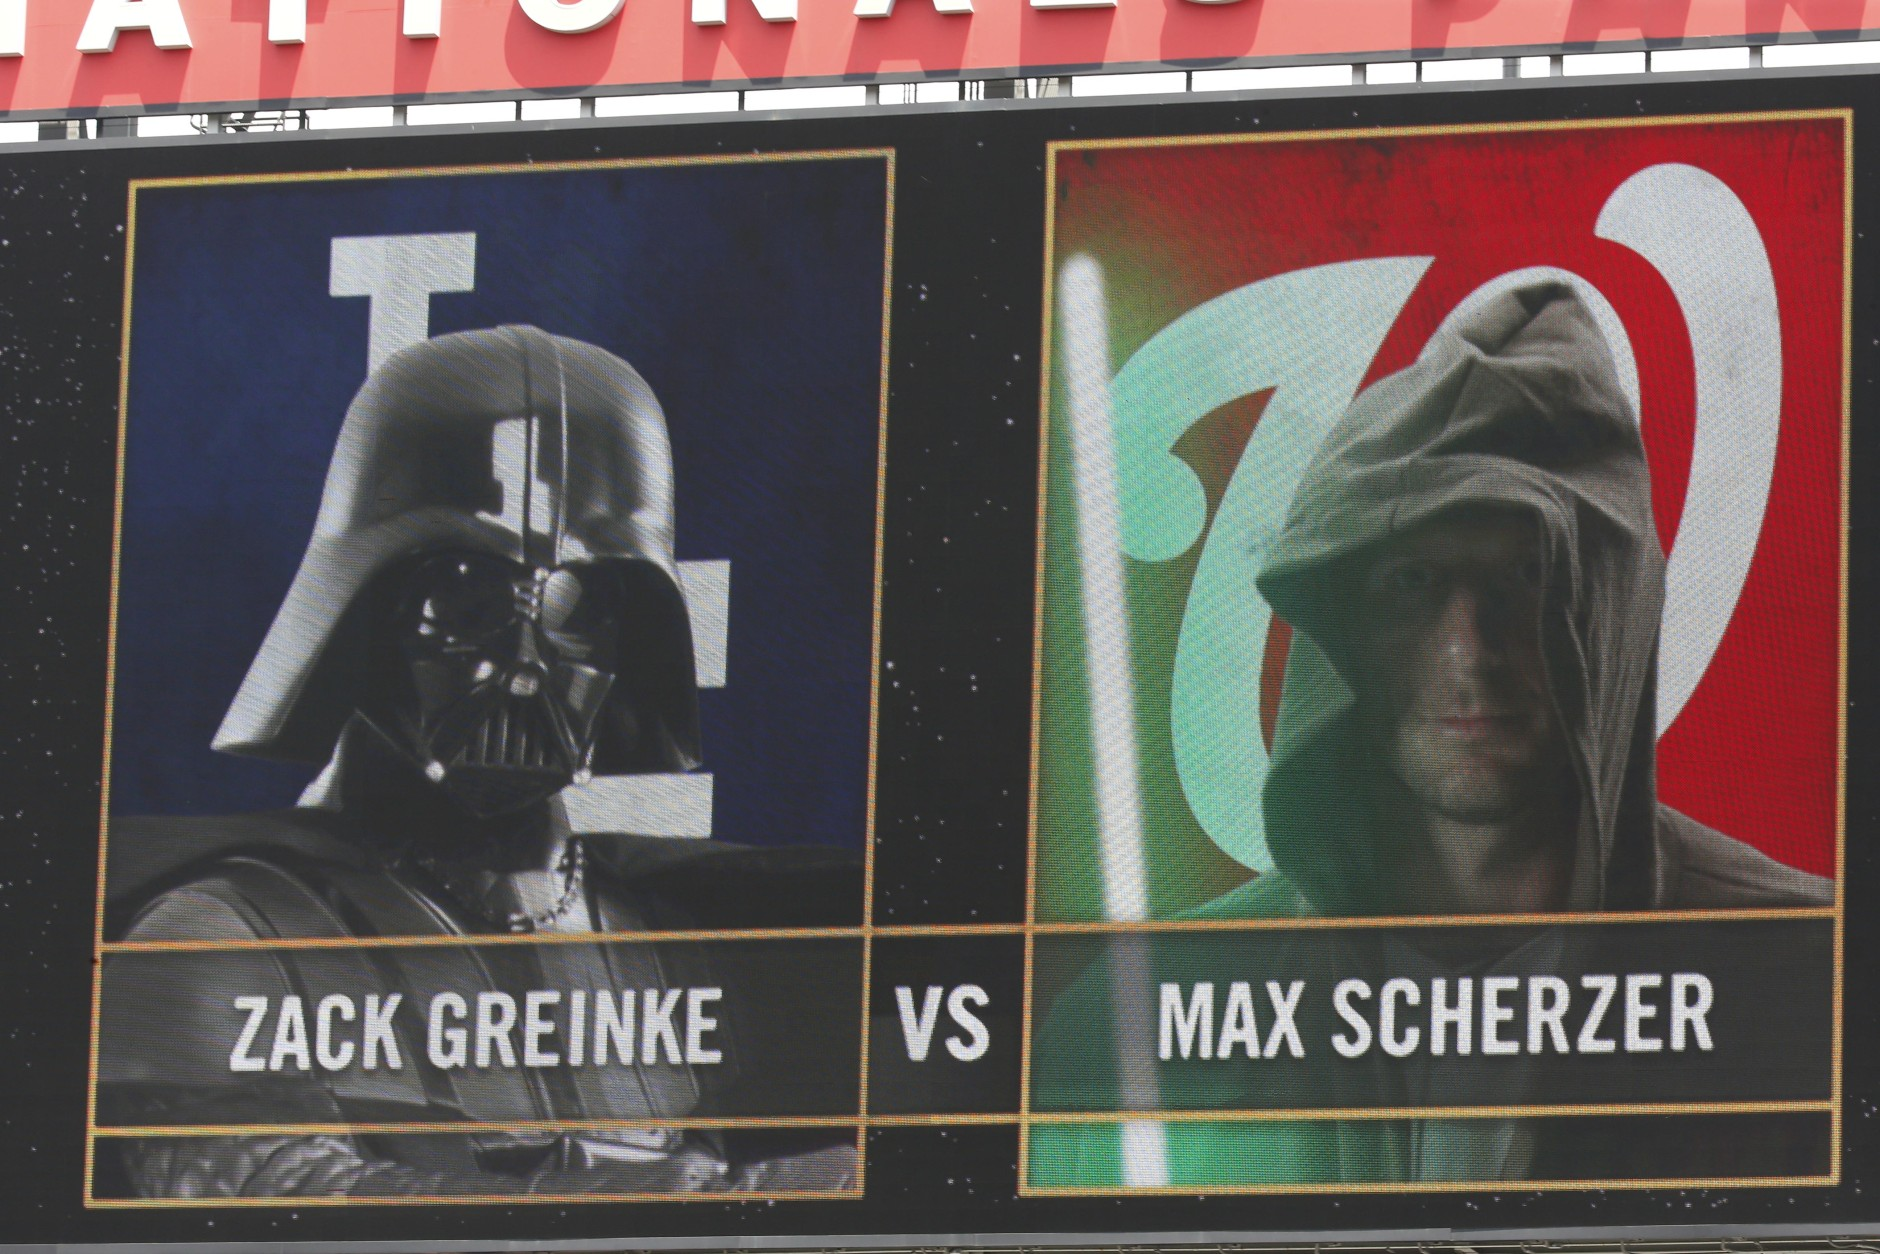 The scoreboard dispays the pitching matchup between Los Angeles Dodgers starting pitcher Zack Greinke and Washington Nationals starting pitcher Max Scherzer on Star Wars Day before a baseball game at Nationals Park, Sunday, July 19, 2015, in Washington. (AP Photo/Alex Brandon)